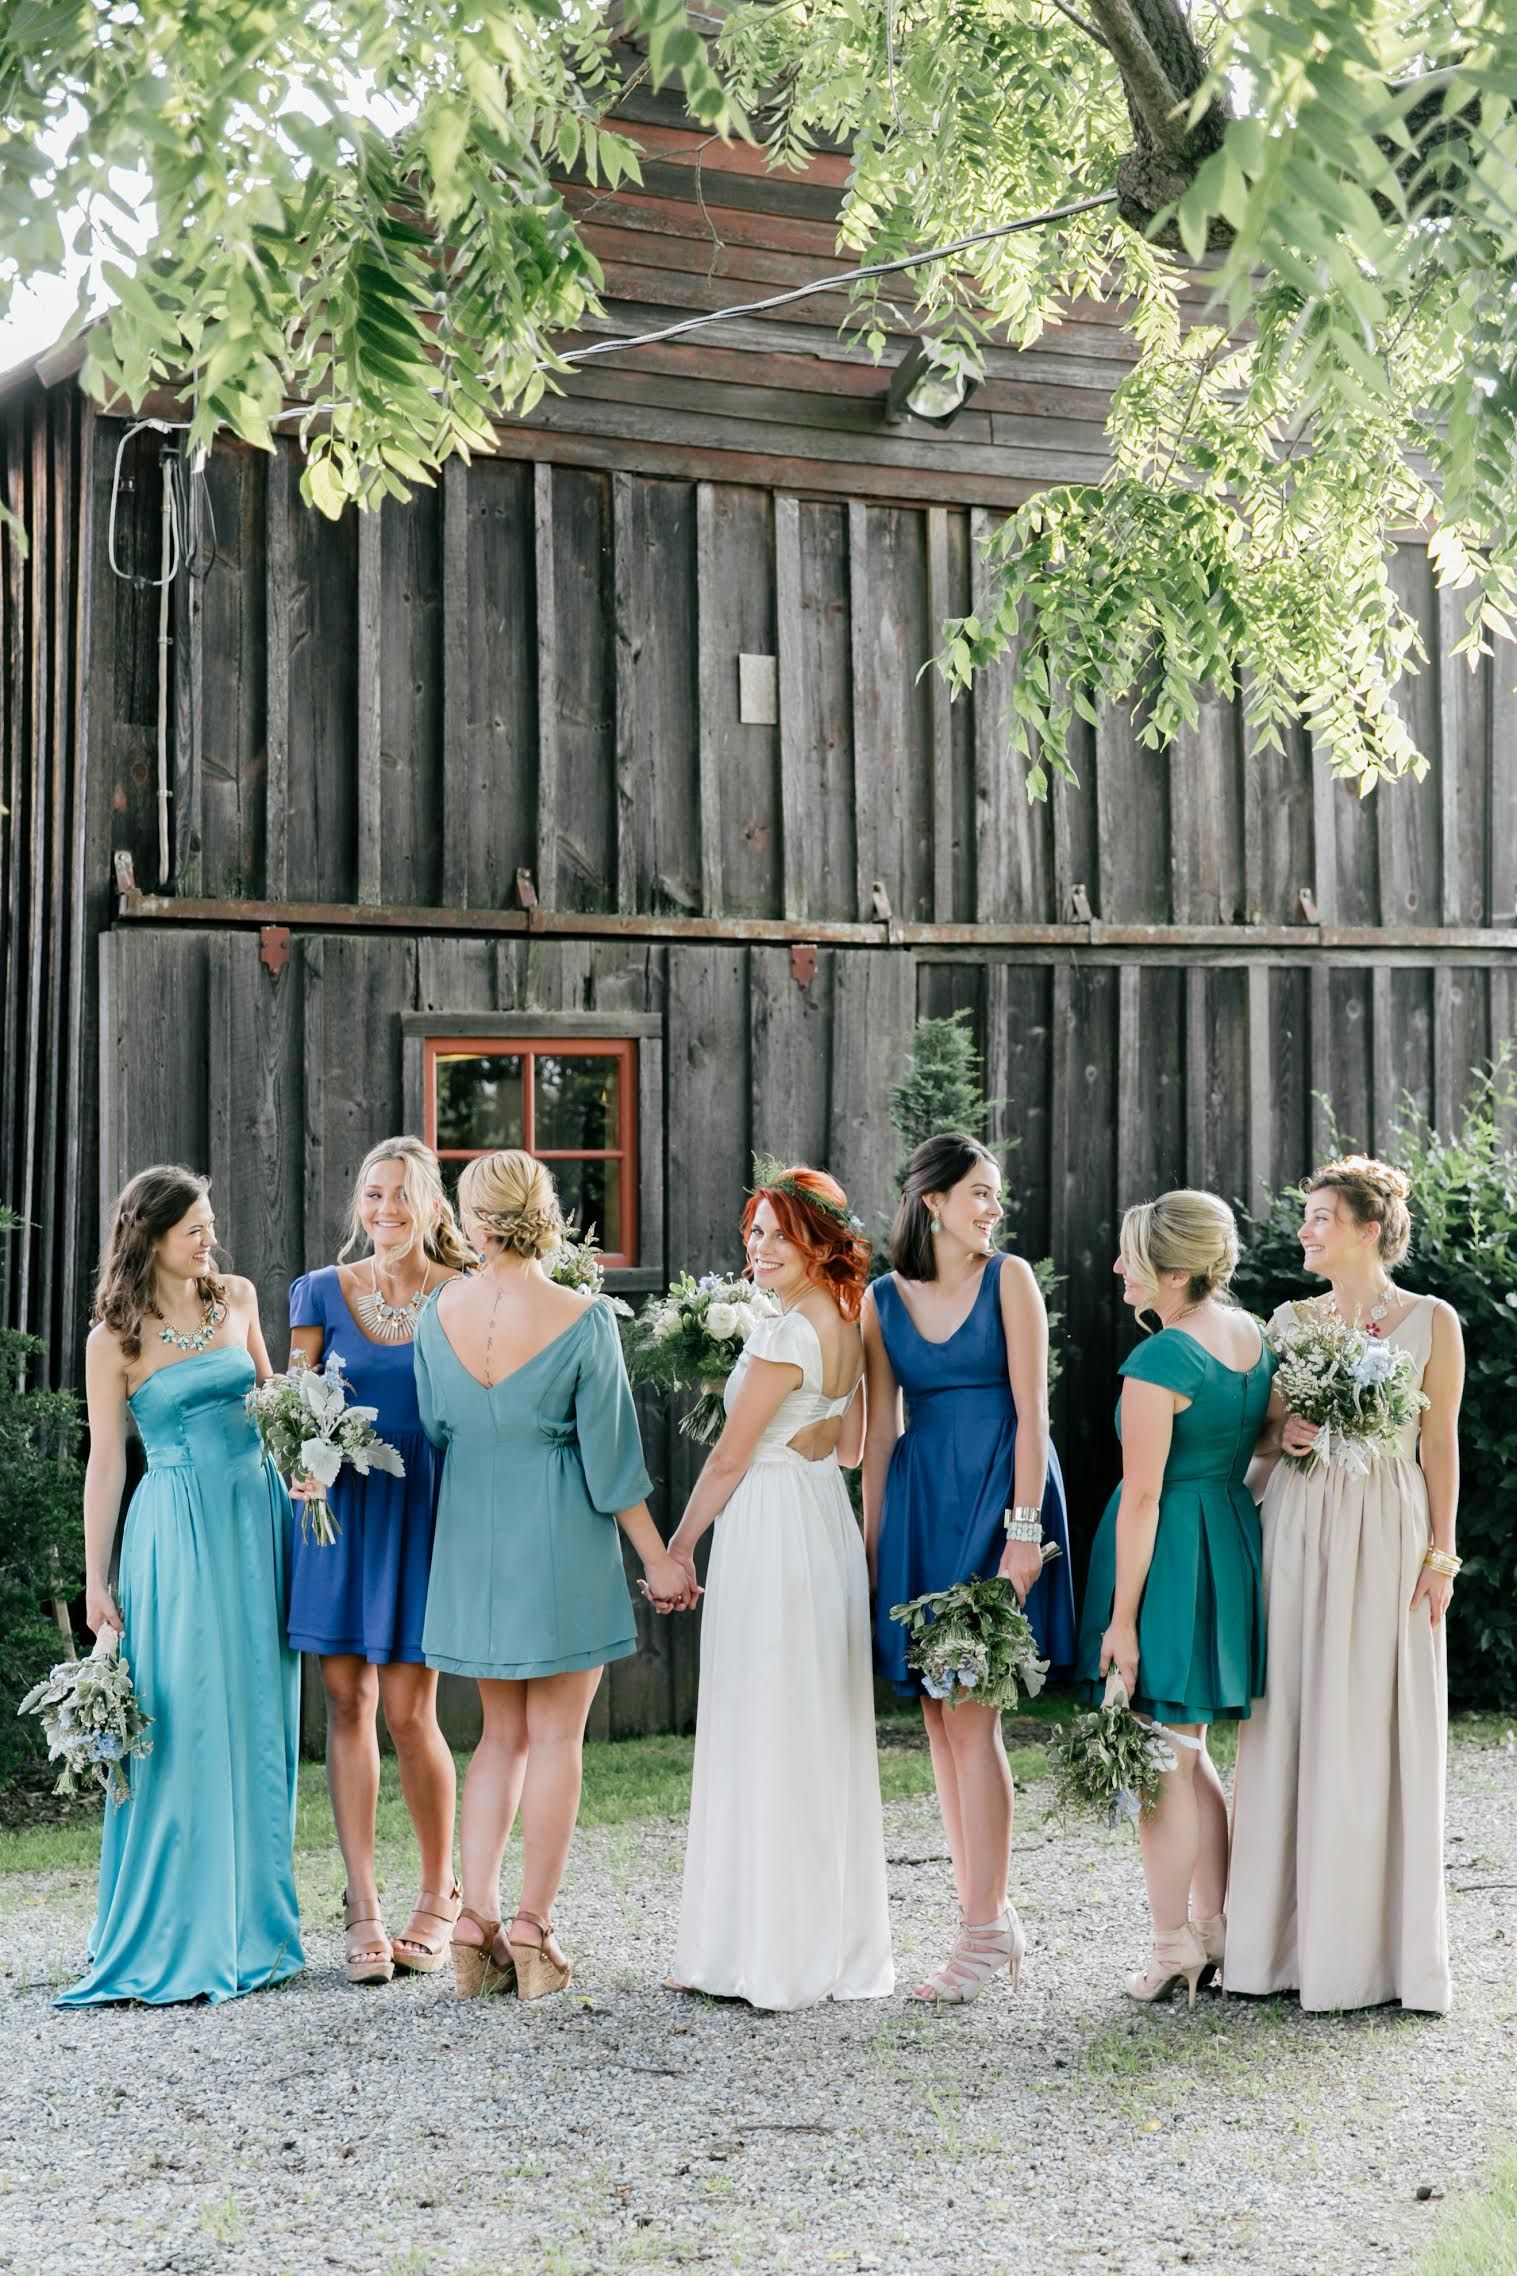 Reversible bridesmaid dresses we say yes bridesmaids bridesmaid reversible bridesmaid dresses ombrellifo Images